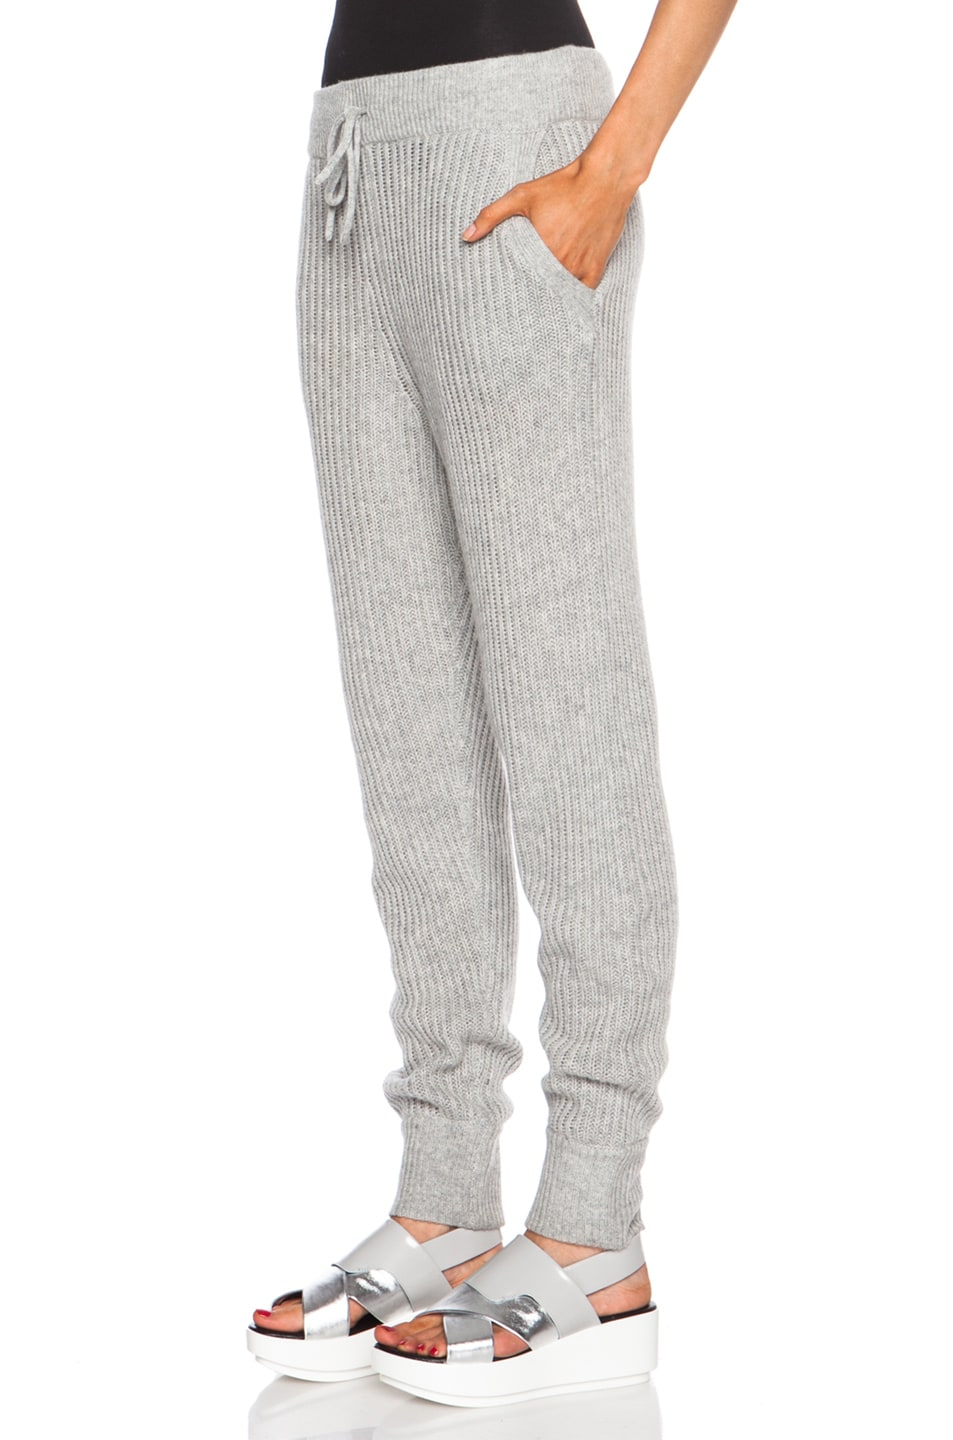 Image 2 of T by Alexander Wang Wool-Blend Sweatpants in Heather Grey